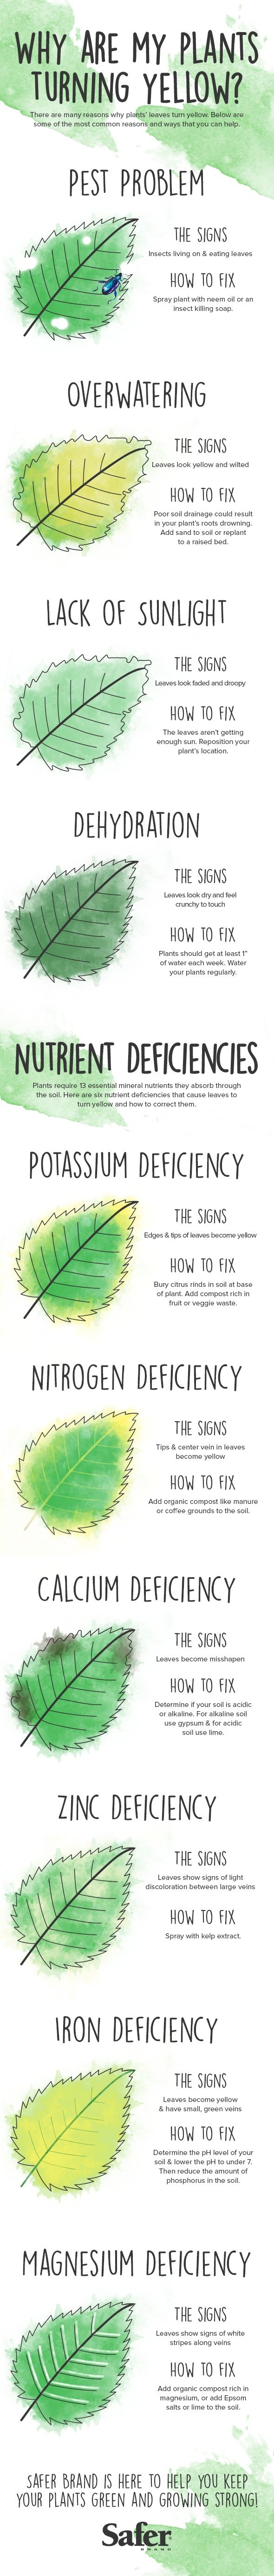 Garden cheat sheets-5